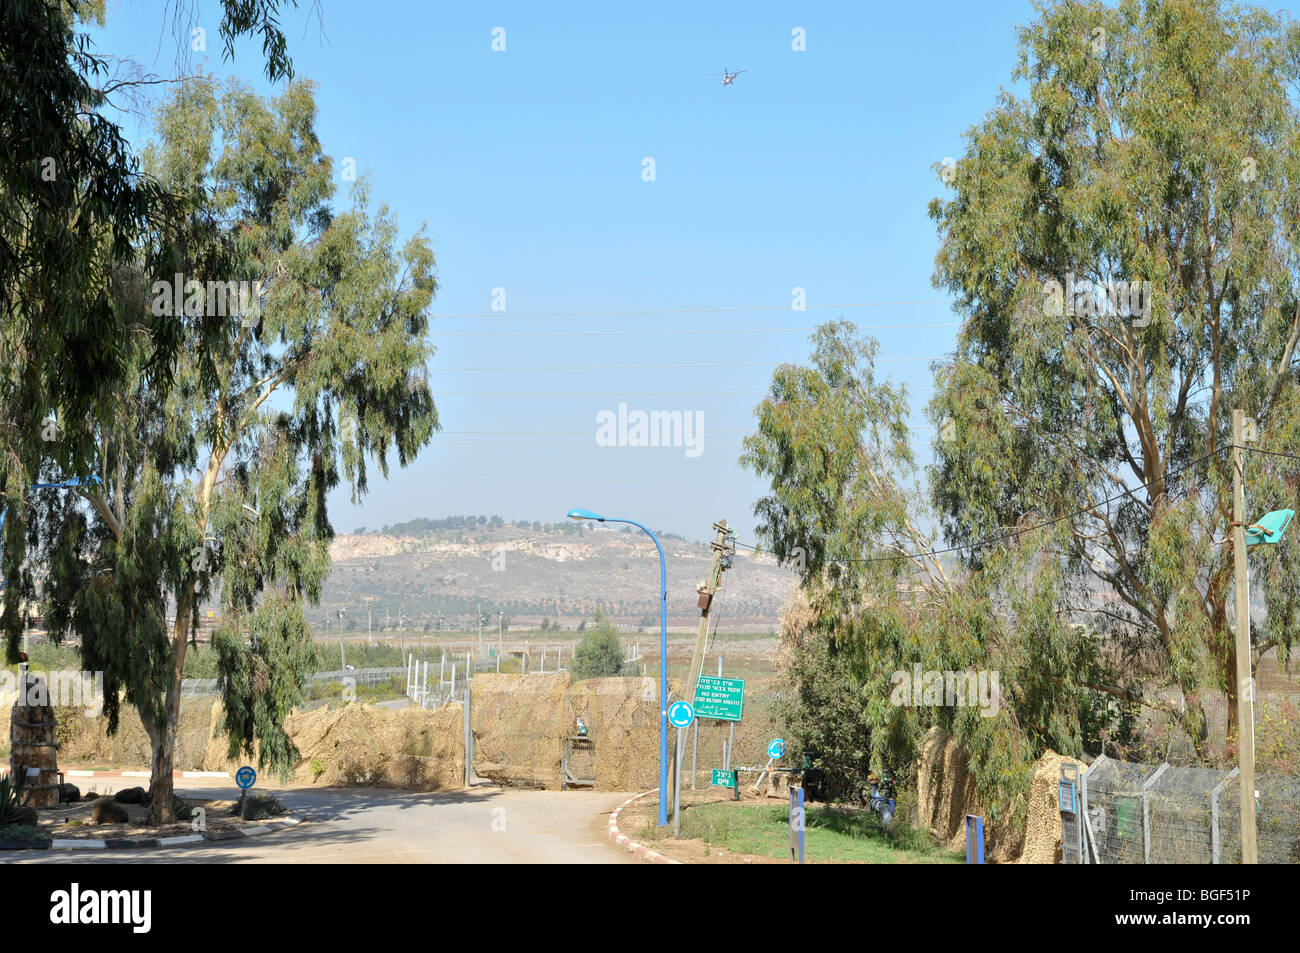 Israel, Upper Galilee, Metula, (founded 1896) - Stock Image